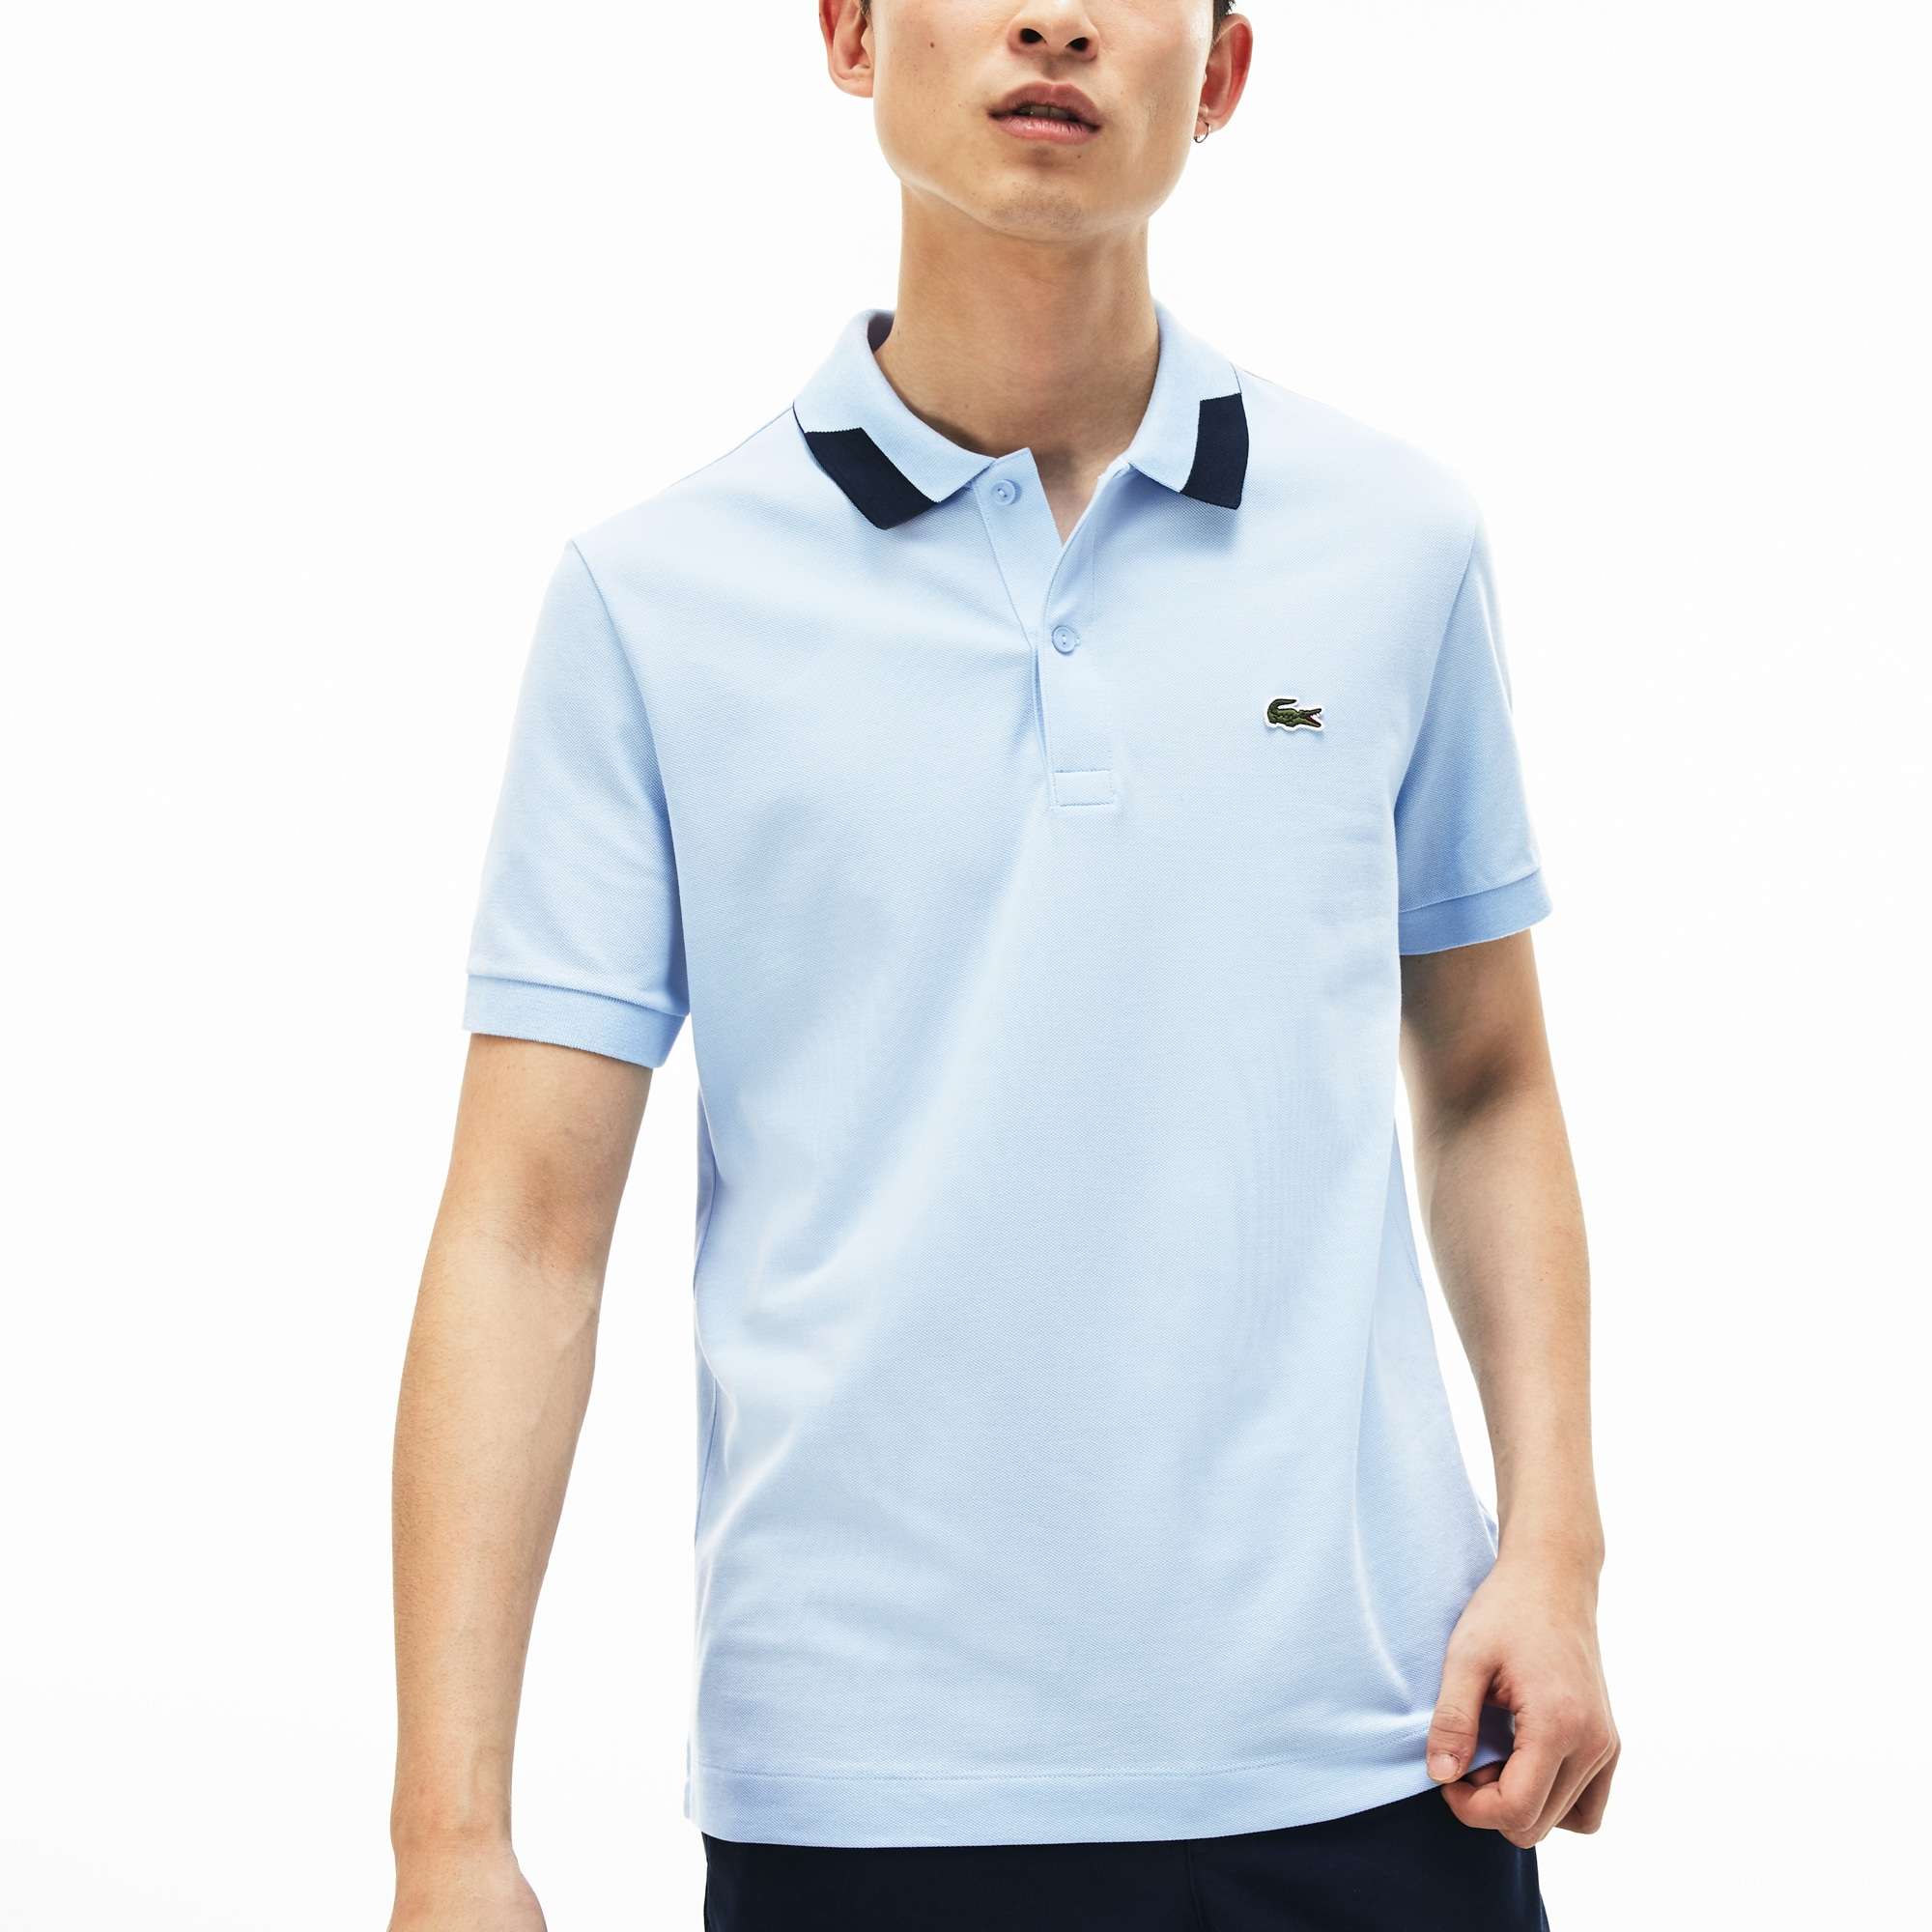 Men's Slim Fit Stretch Polo Shirt